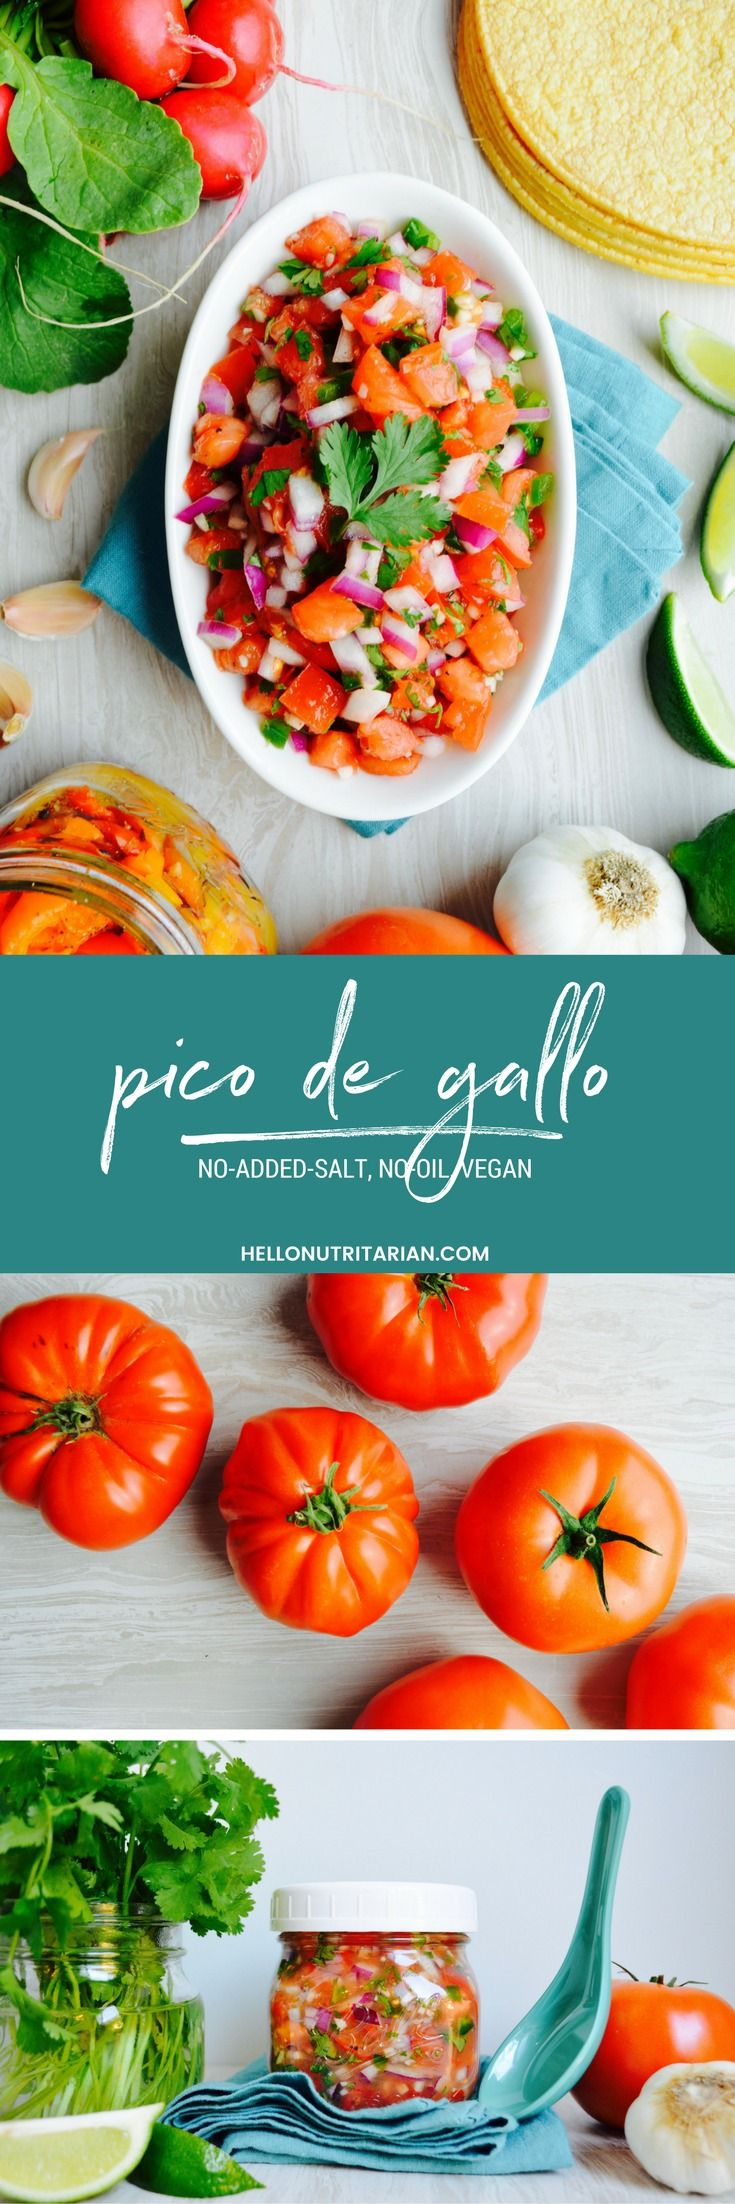 "Pico De Gallo Recipe No Added Salt, No Oil, Vegan, Nutritarian Recipe - Nothing says ""summer"" like homemade pico de gallo!  This recipe has tons of super-fresh flavor without the oil or salt!  Click through to find out which type of tomatoes are best for your pico..."